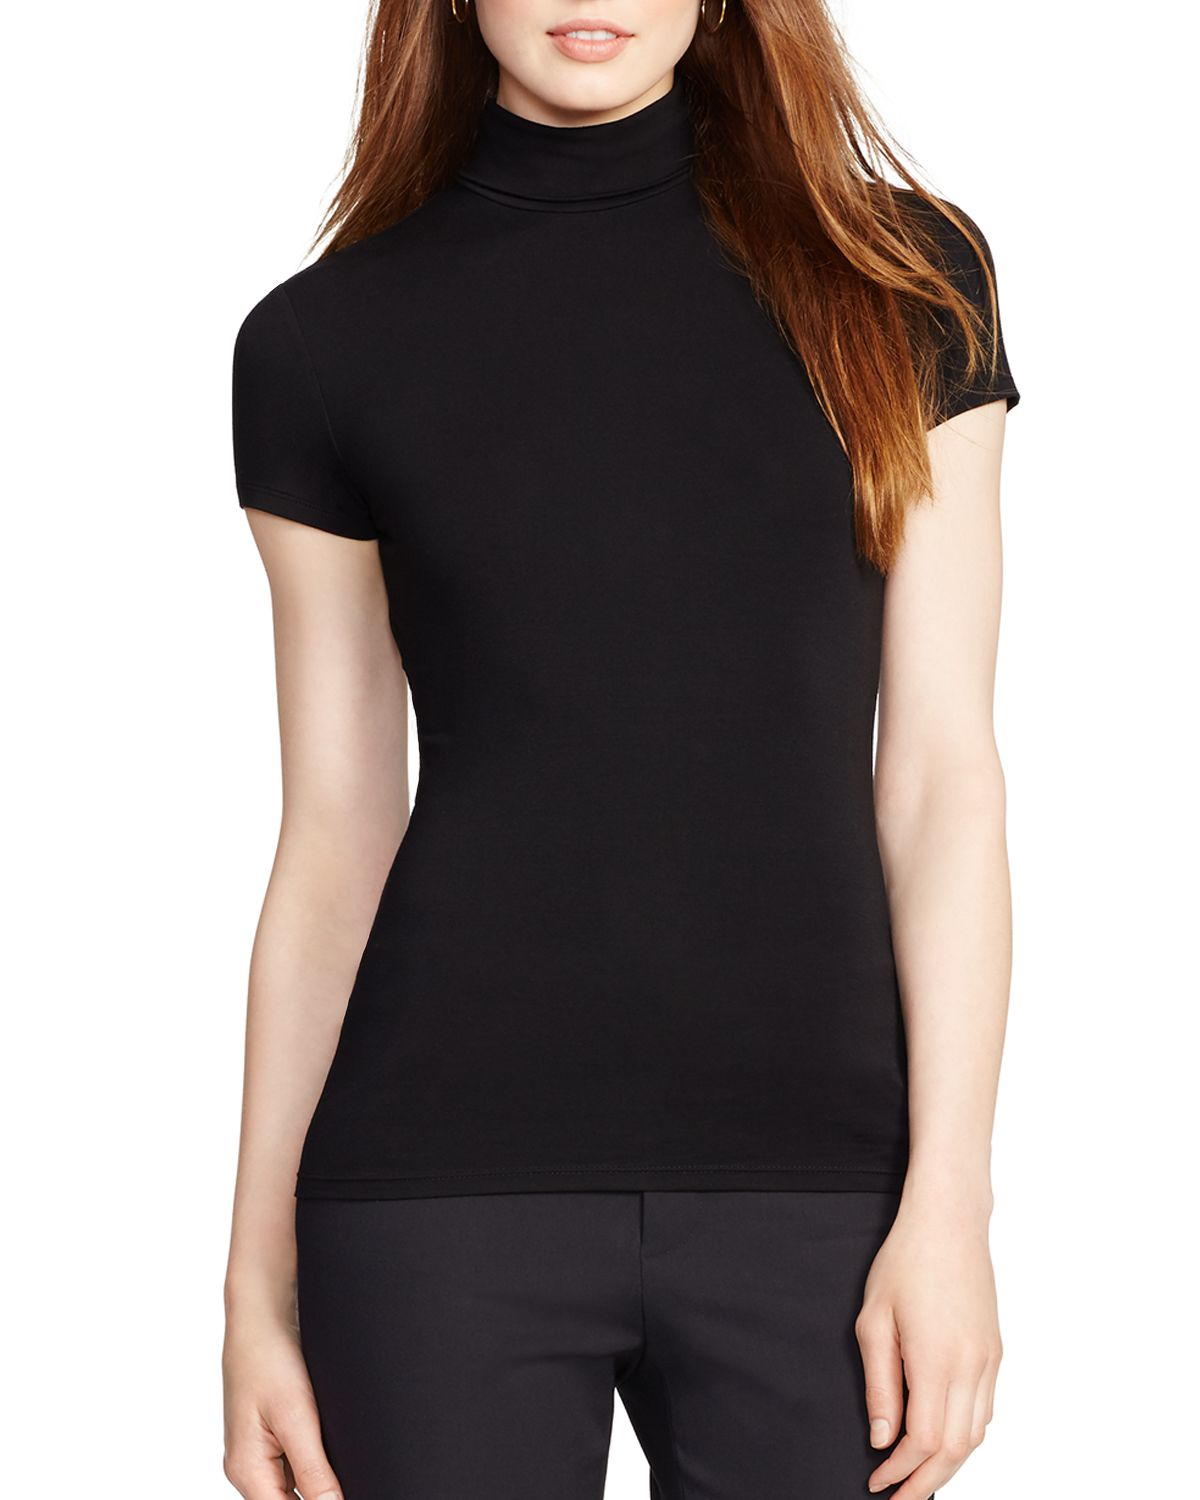 Find turtleneck top short sleeve at ShopStyle. Shop the latest collection of turtleneck top short sleeve from the most popular stores - all in one Top colors For turtleneck top short sleeve Black turtleneck top short sleeve Givenchy Women's Compact Knit Short-Sleeve Turtleneck Top-Red $ Get a Sale Alert Free Shipping & Free.